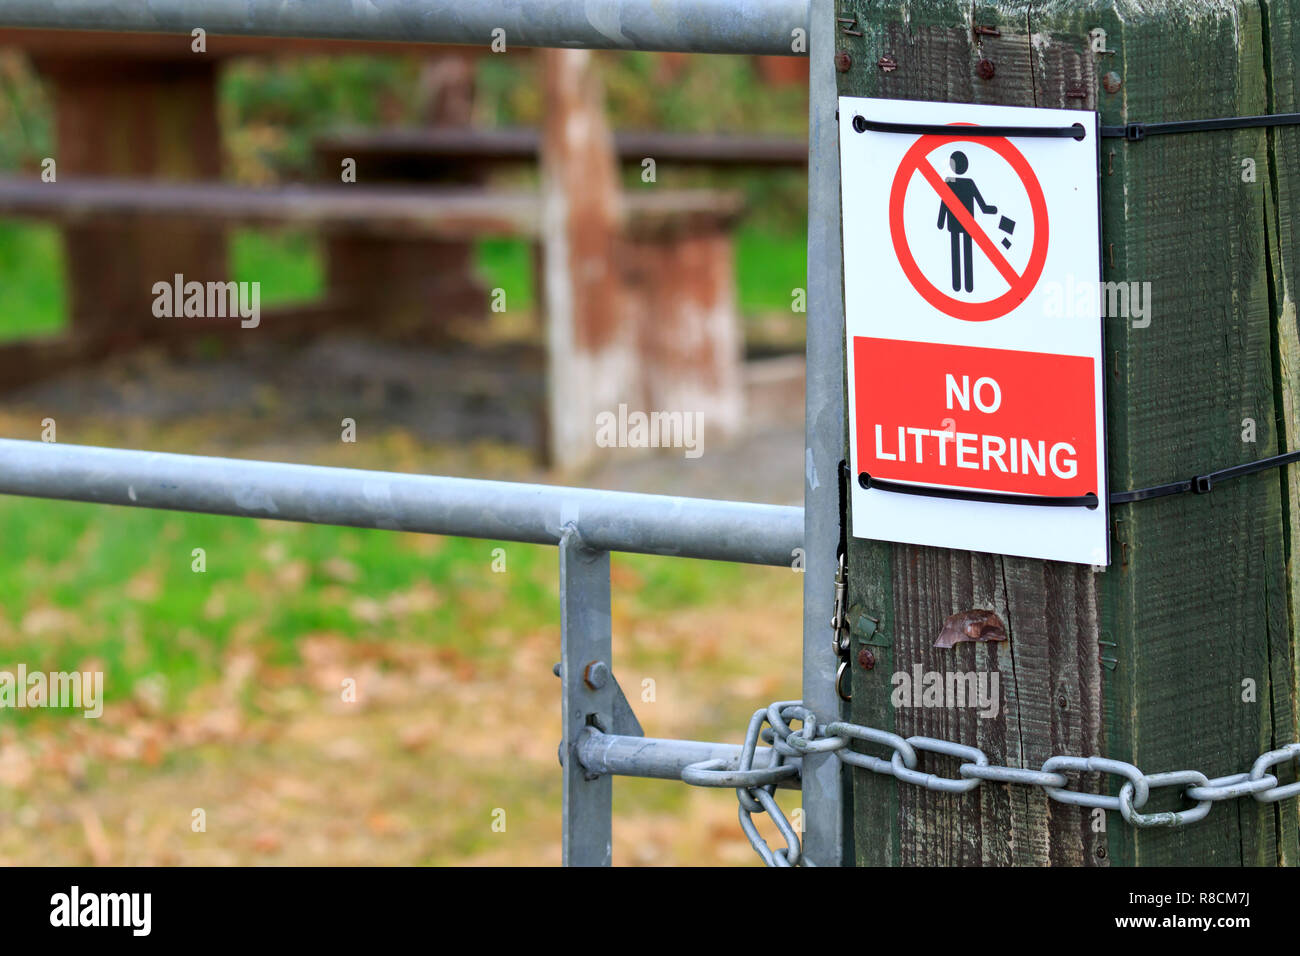 No Littering Sign Stock Photos Amp No Littering Sign Stock